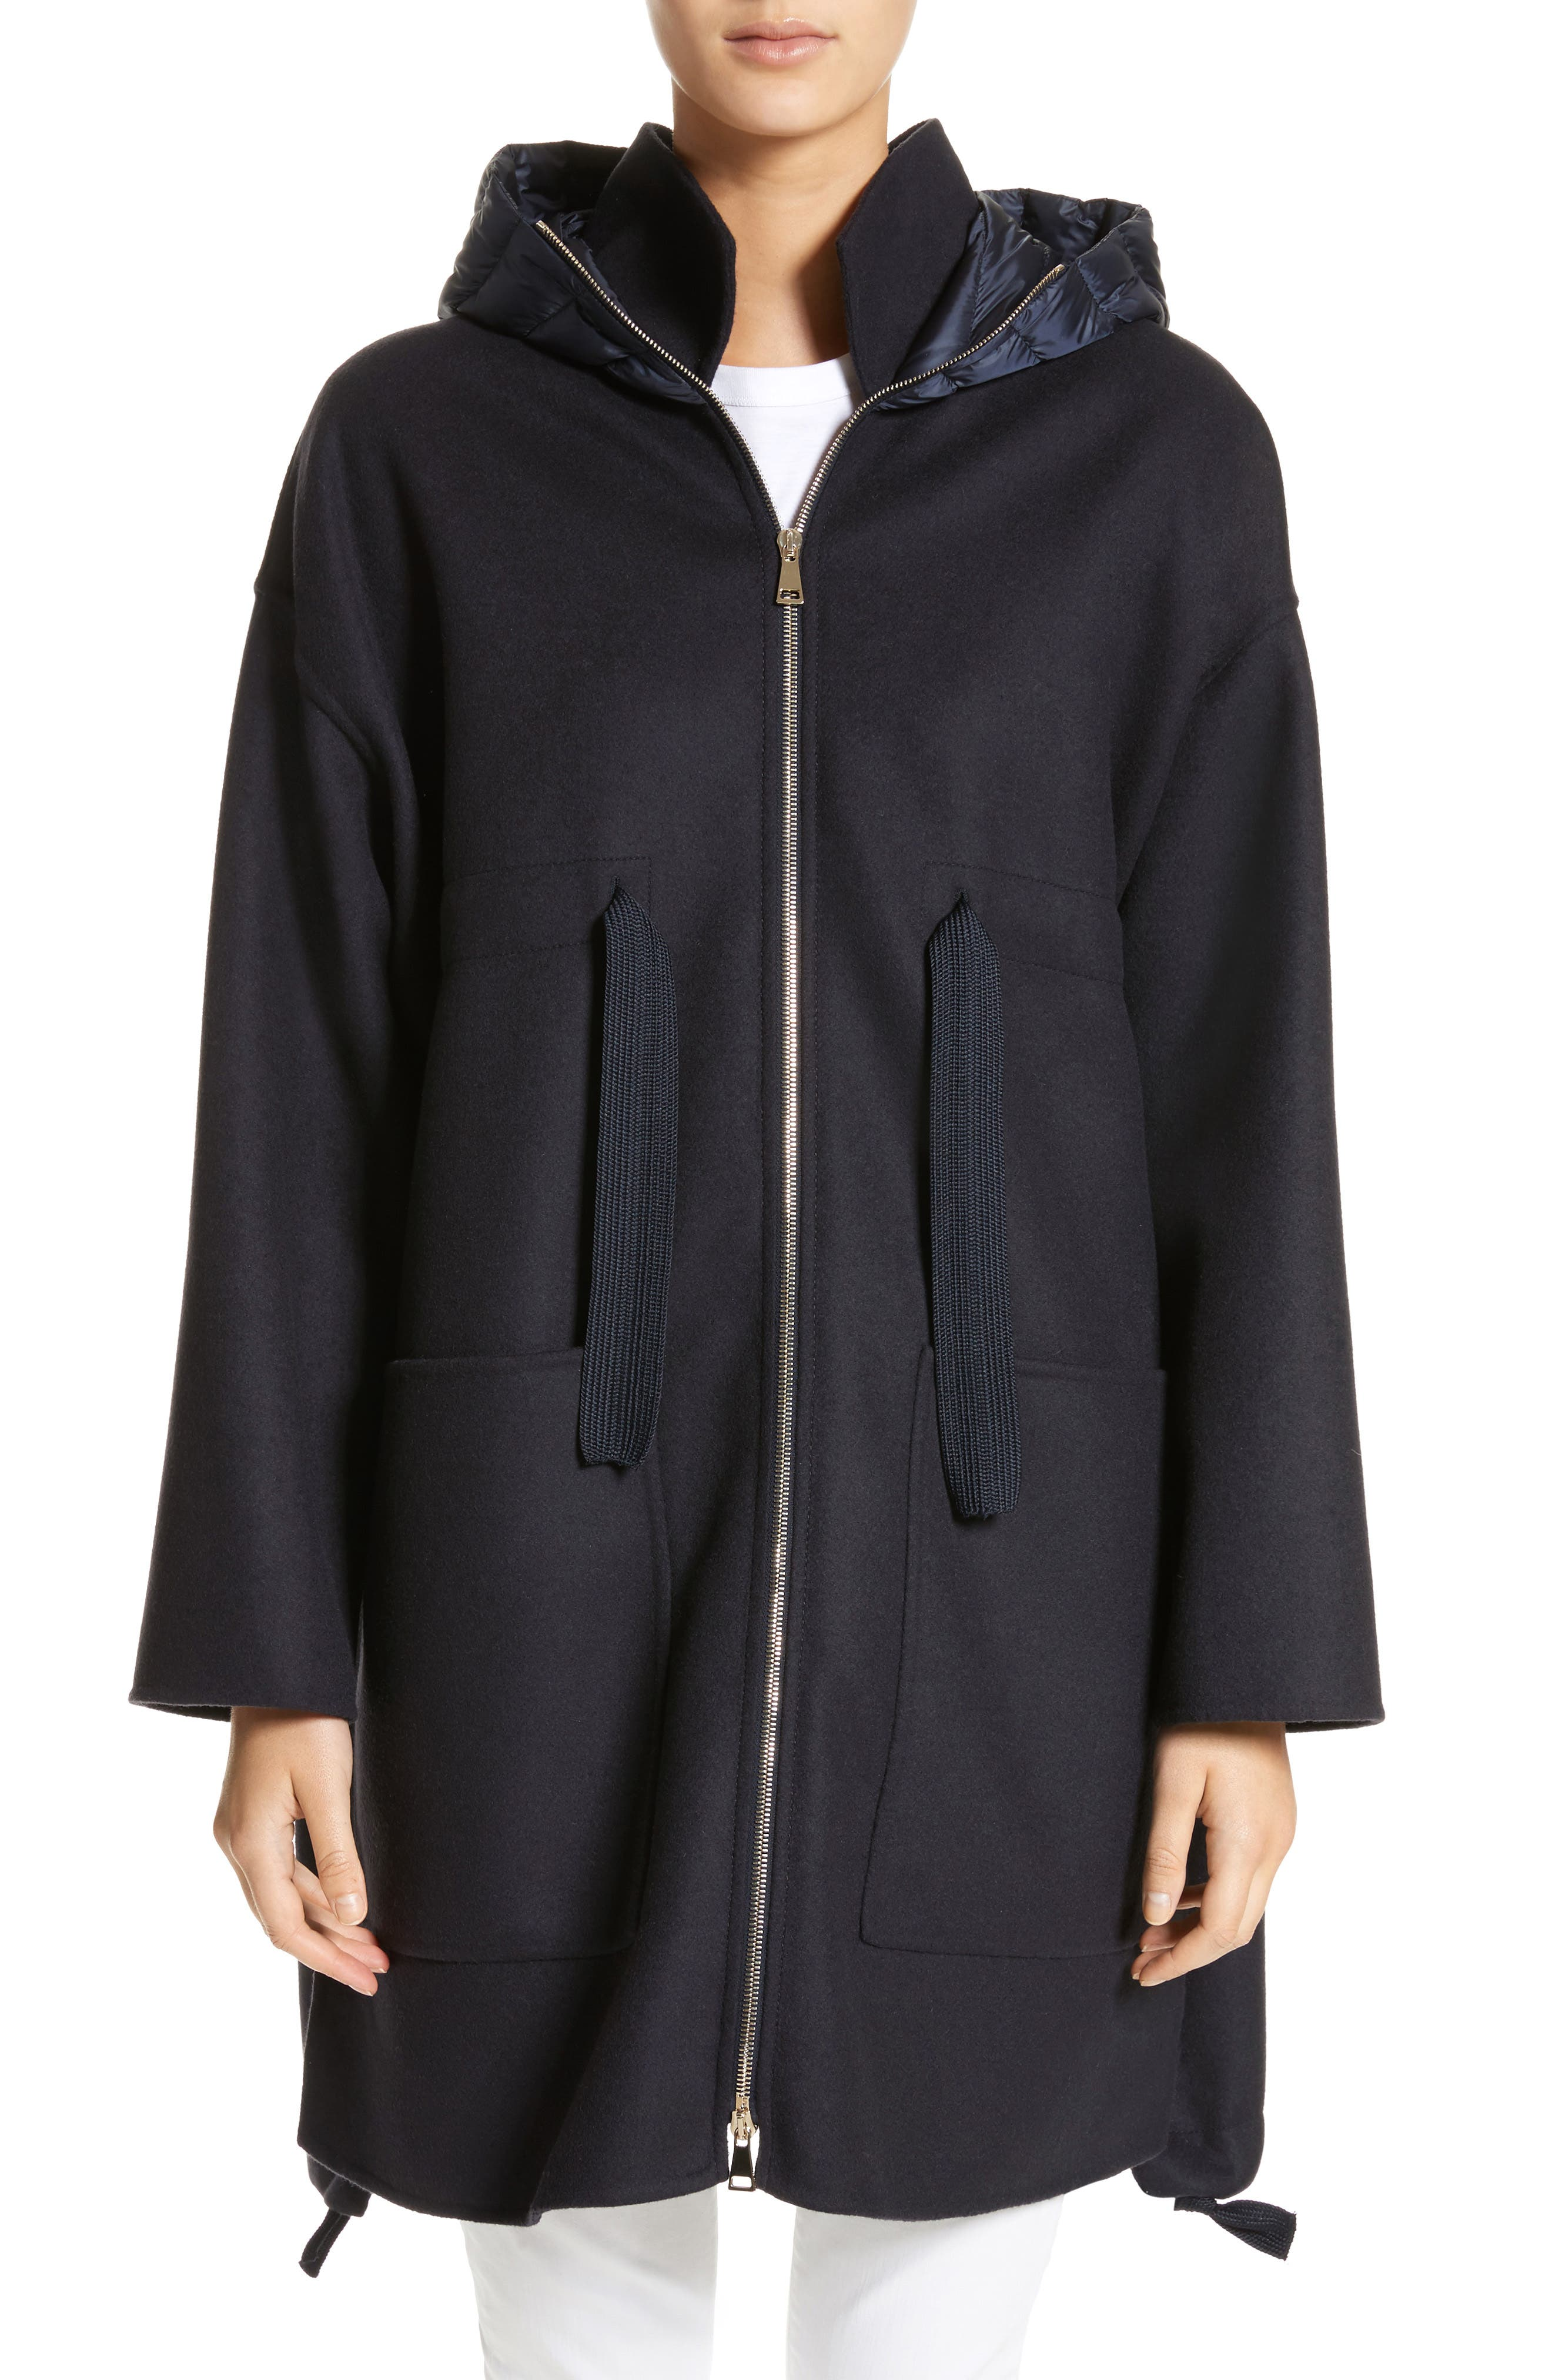 Grenat Wool & Cashmere Hooded Jacket,                         Main,                         color, Navy